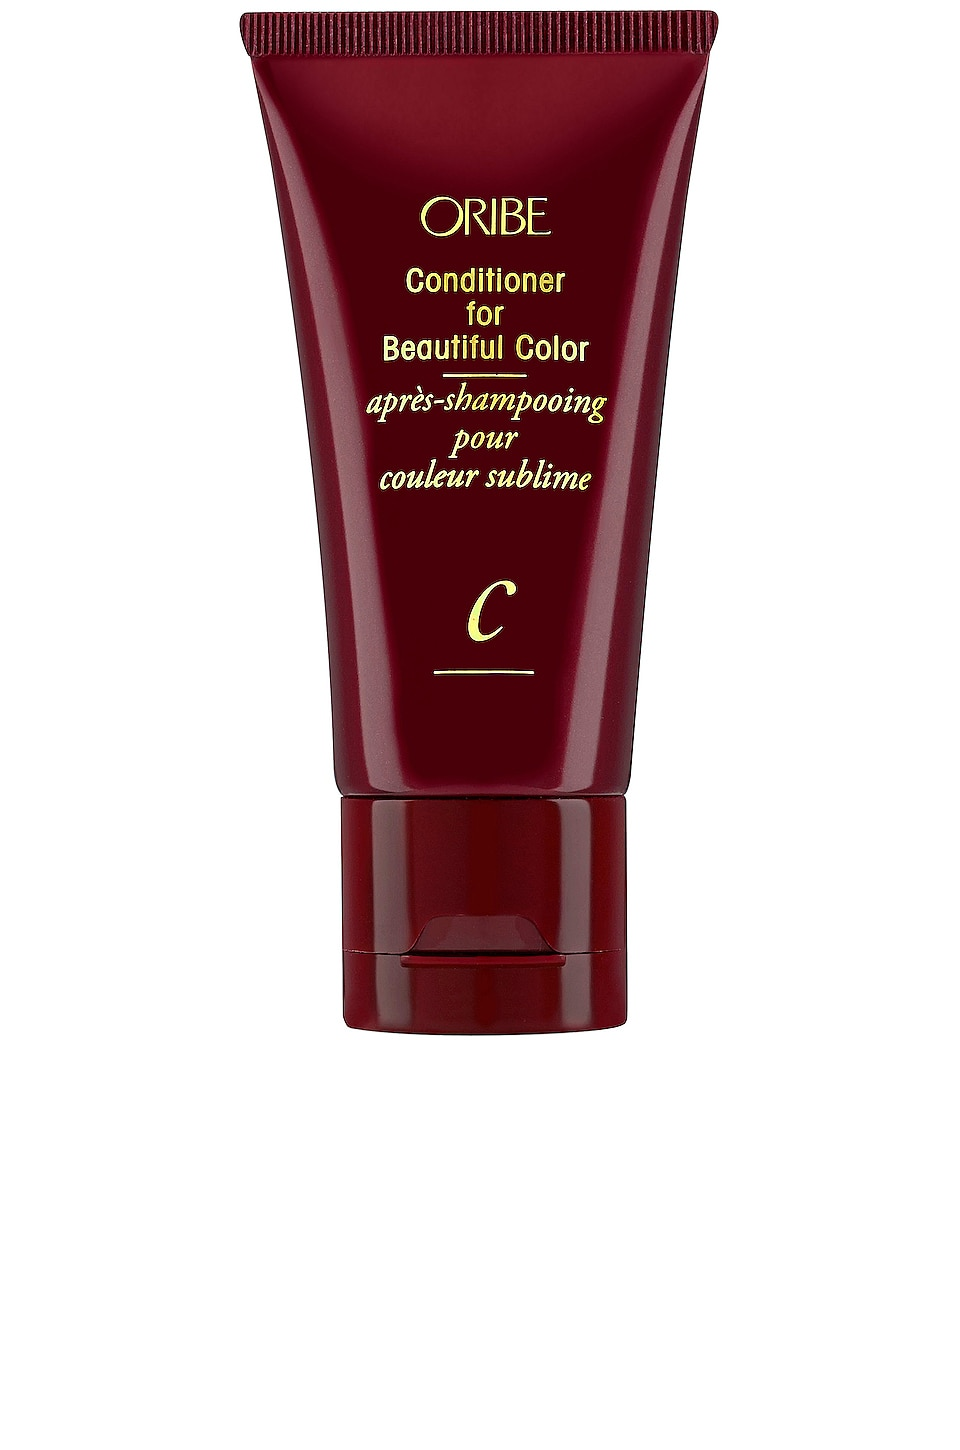 Oribe Travel Conditioner for Beautiful Color